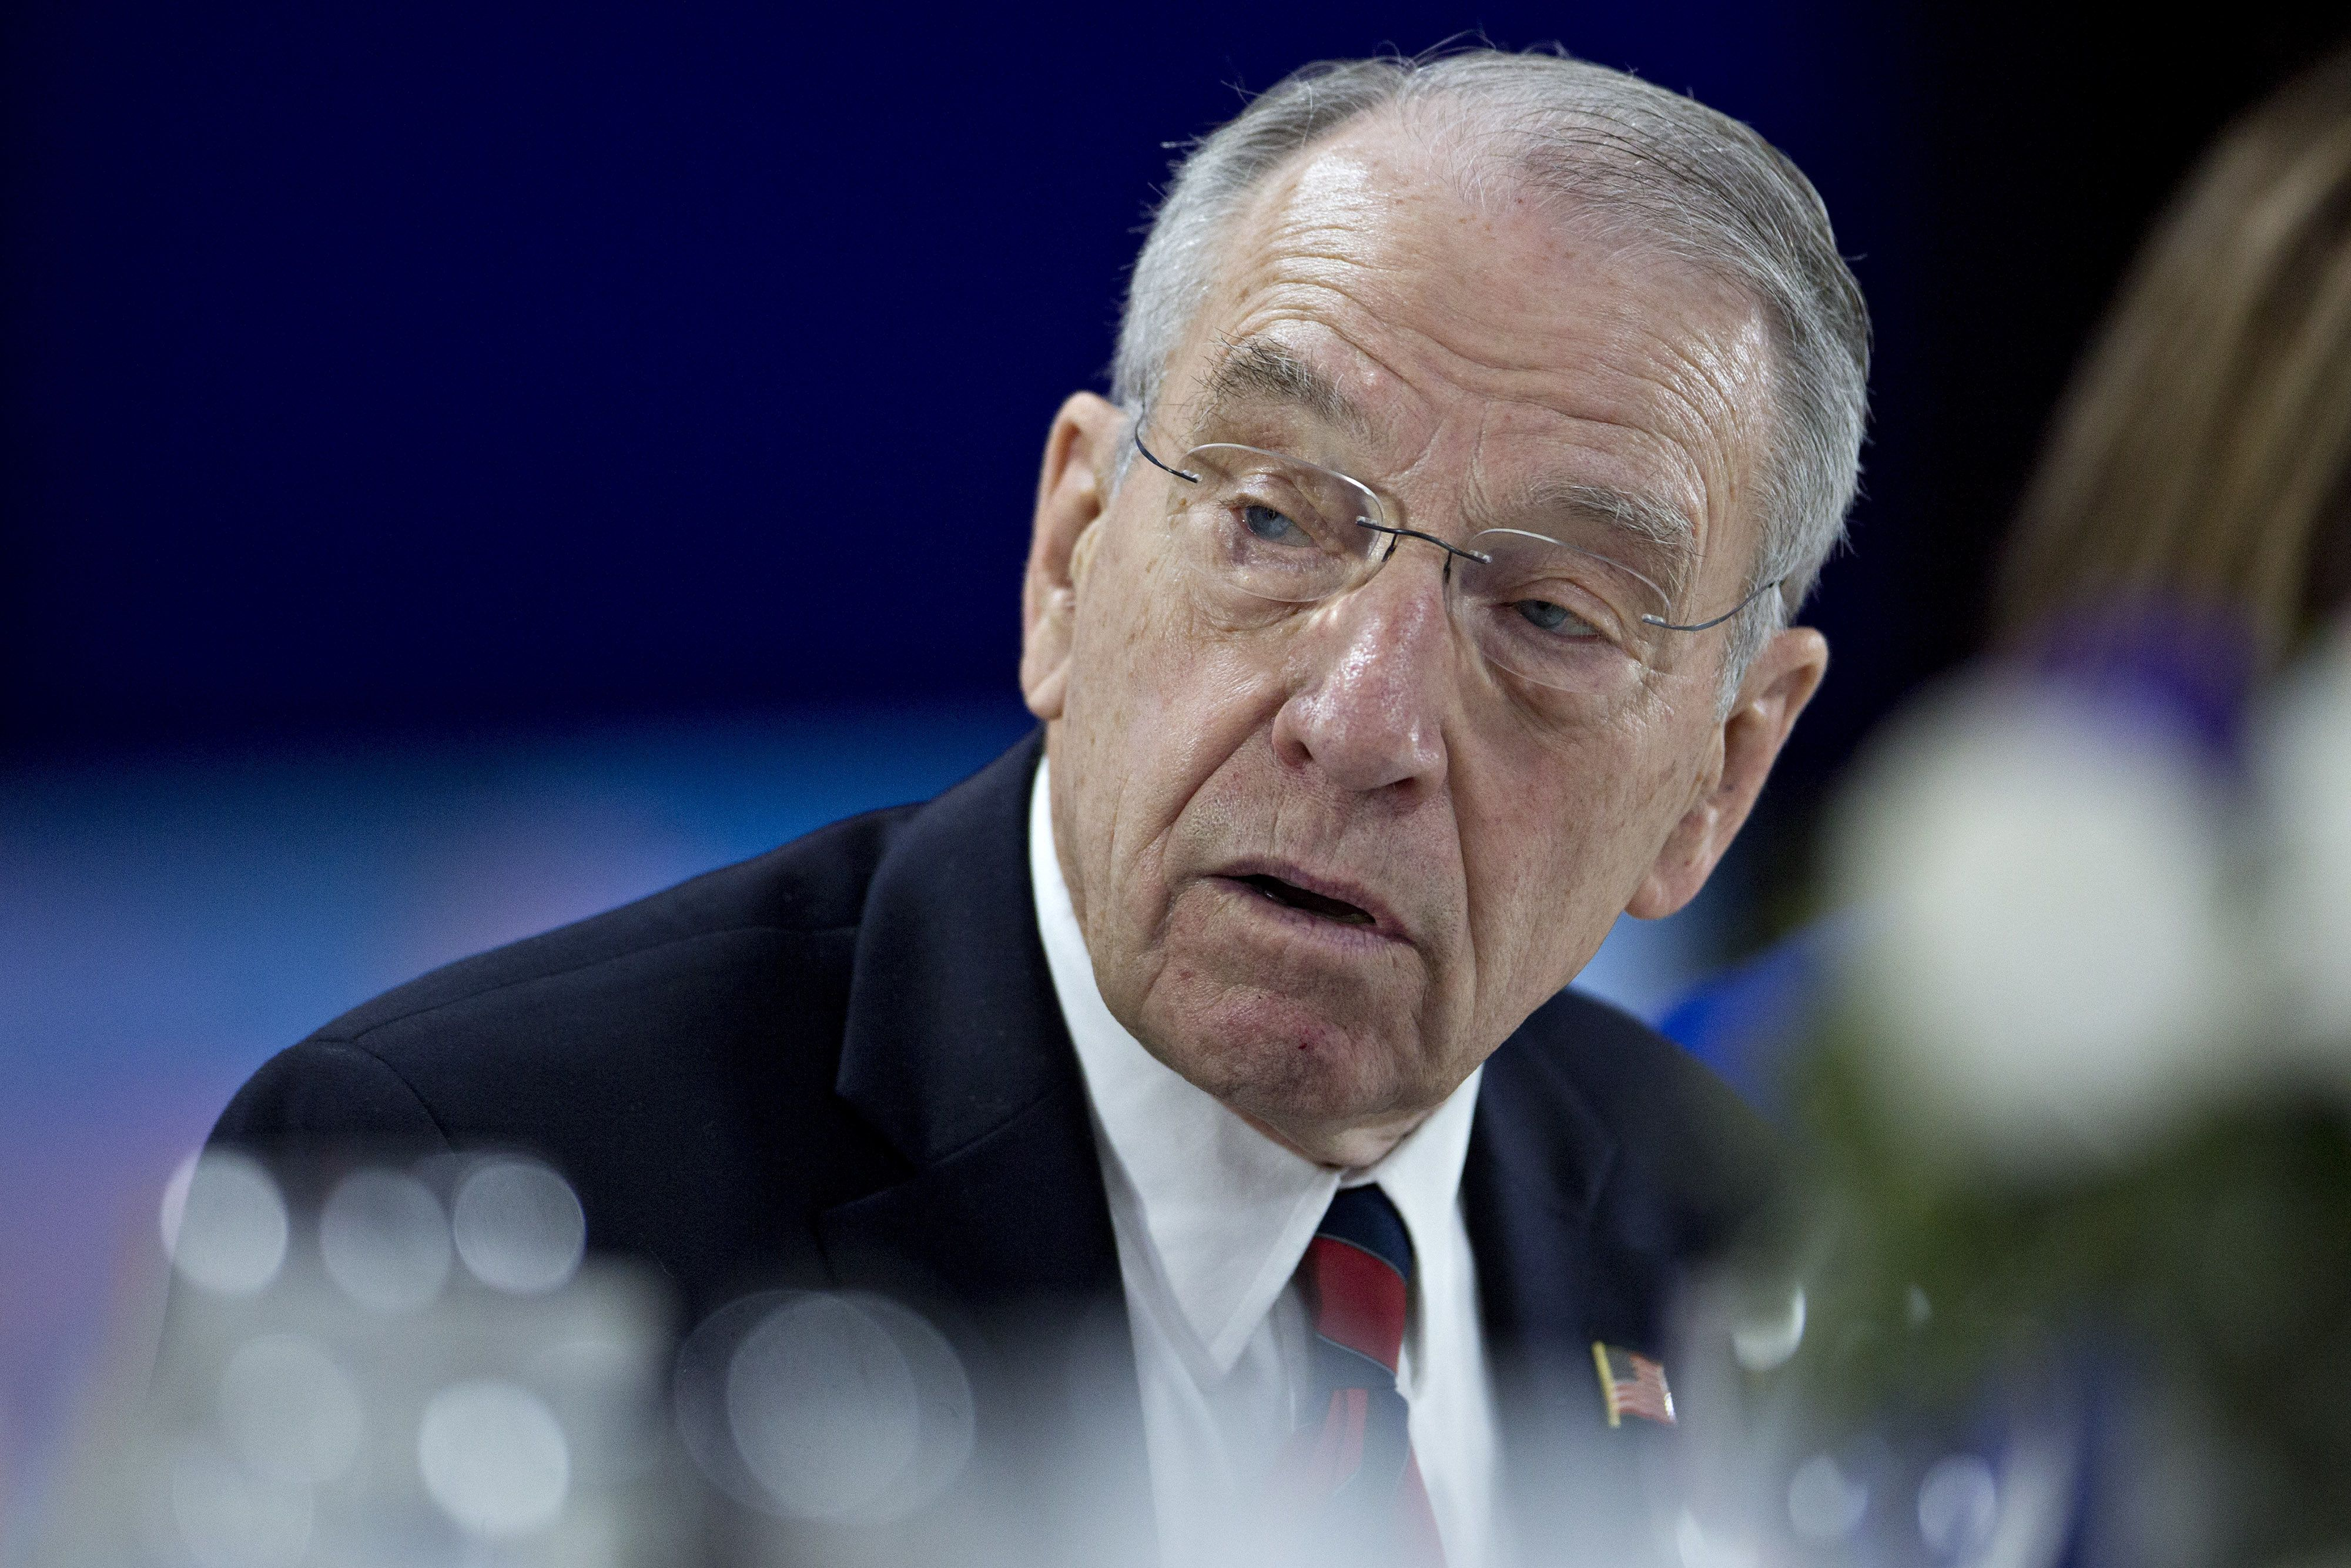 Senator Charles 'Chuck' Grassley, a Republican from Iowa, speaks during a Bloomberg Politics interview in Des Moines, Iowa, U.S., on Monday. Feb. 1, 2016. Grassley said Republican presidential front runner Donald Trump represents the unknown because he's a business leader, but has not been politically vocal except for the past several months.